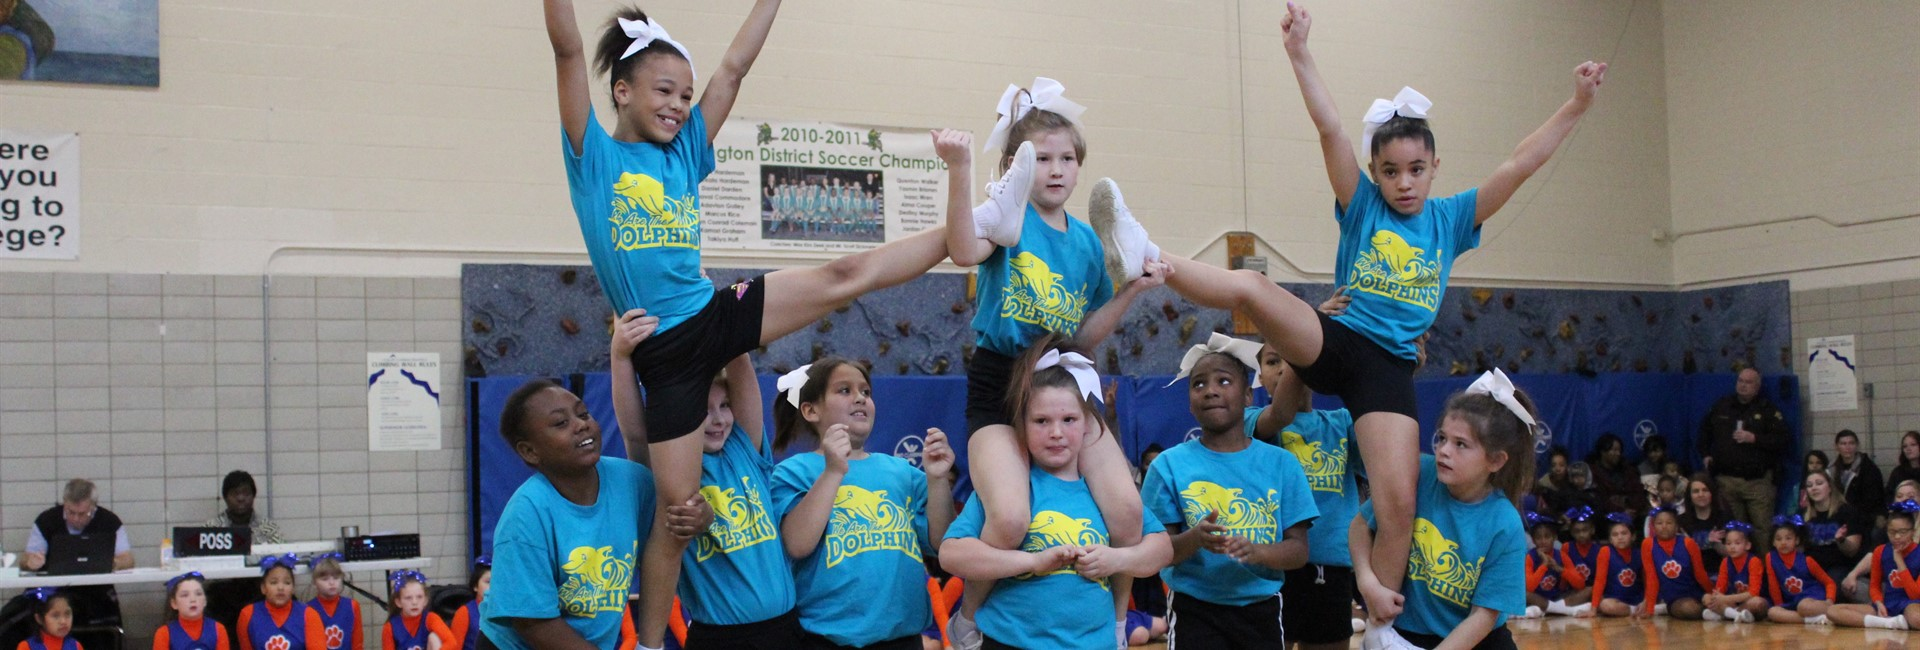 Sixth District cheerleaders compete in the cheerleading competition.